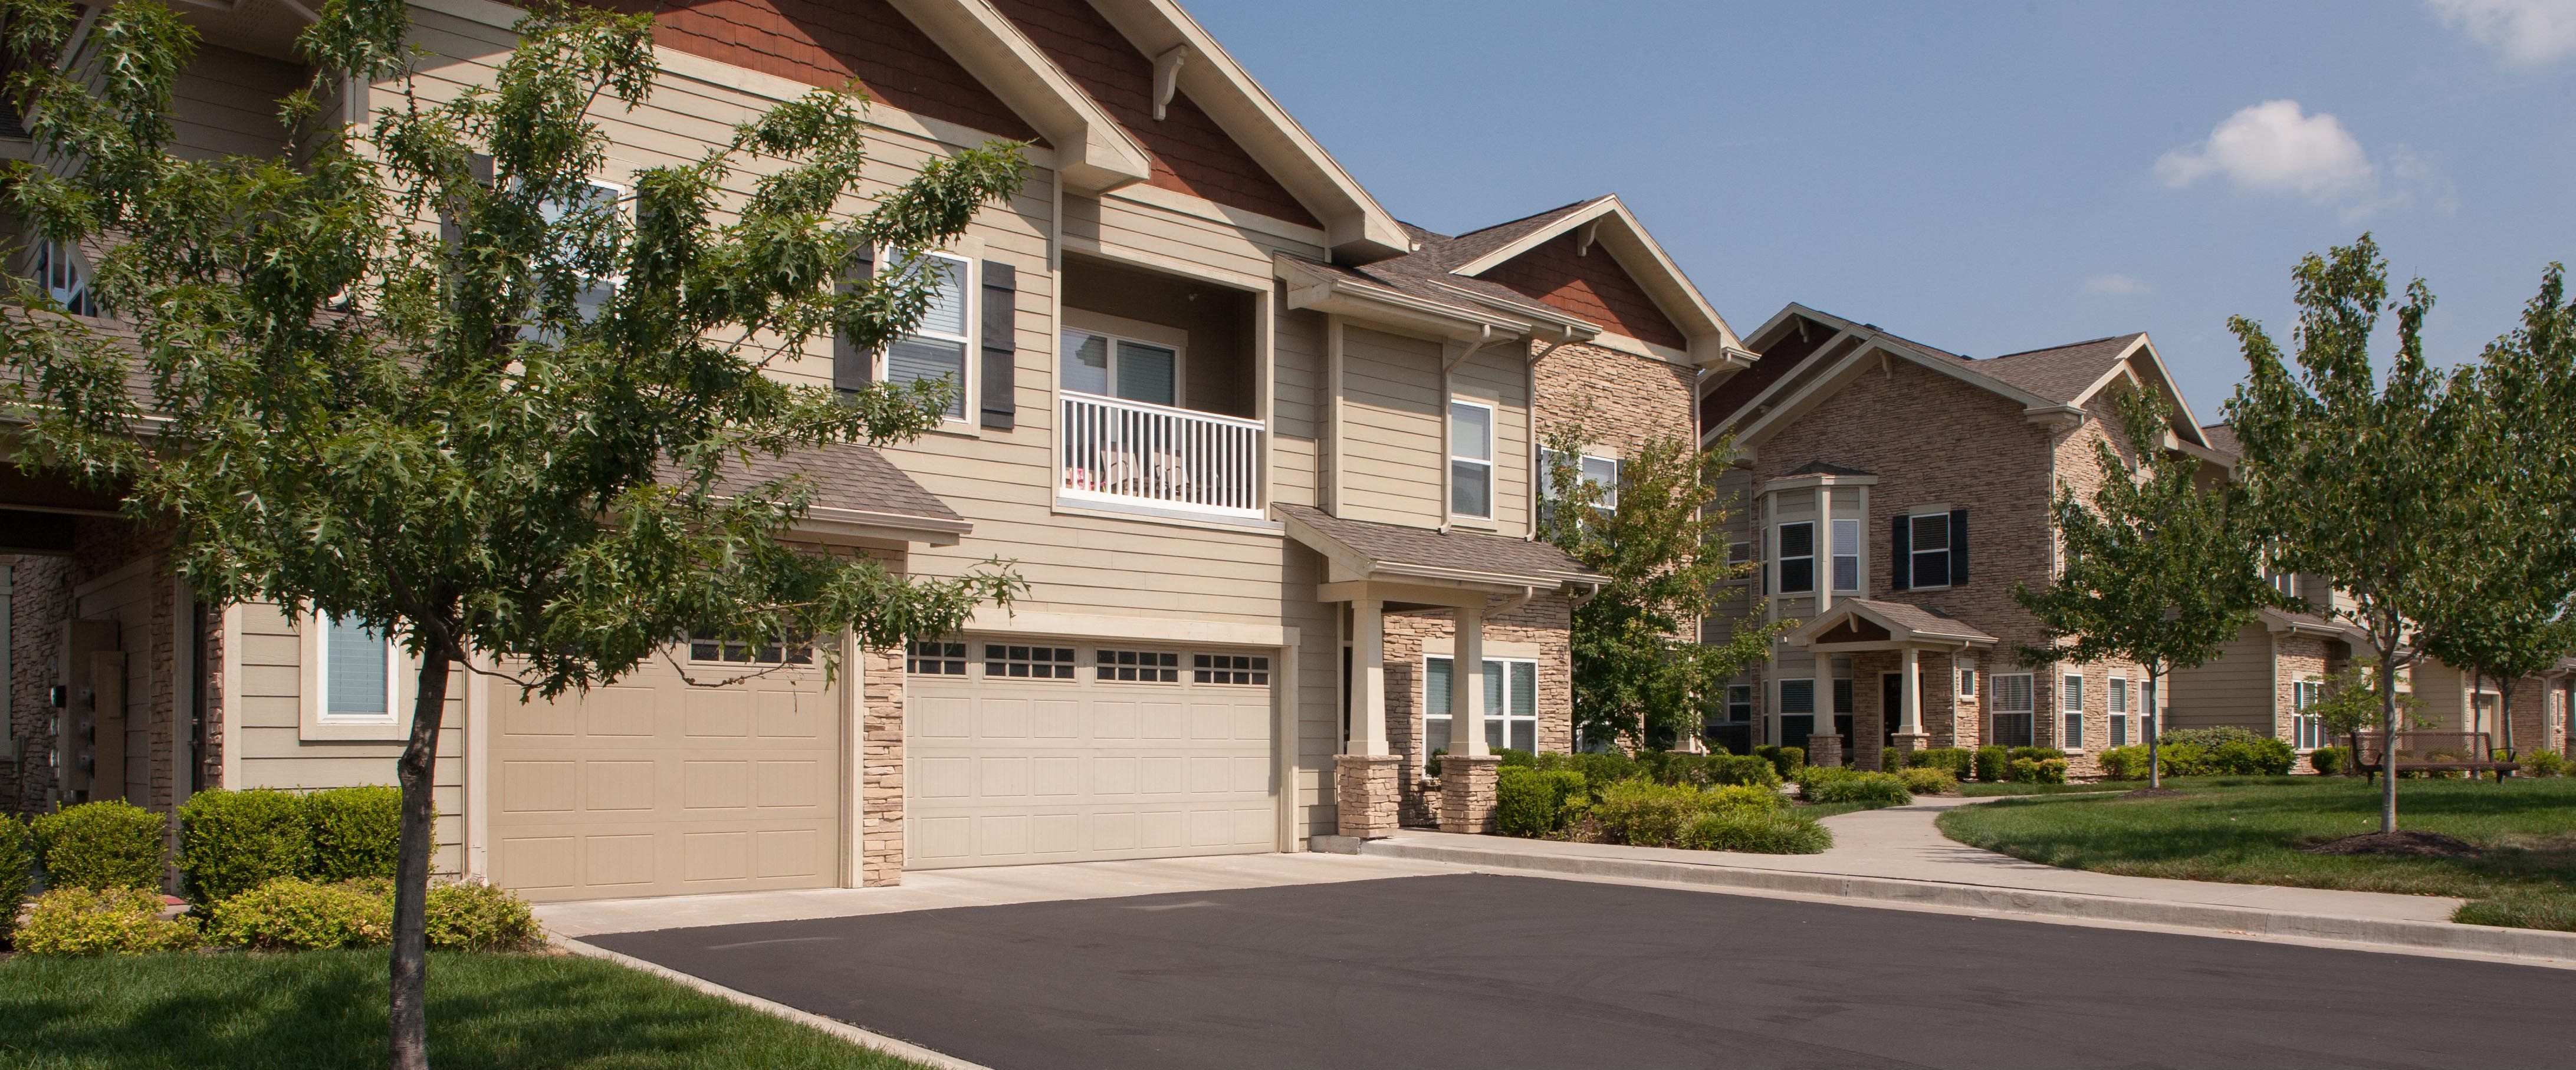 Villas at Carrington Square in Overland Park, KS